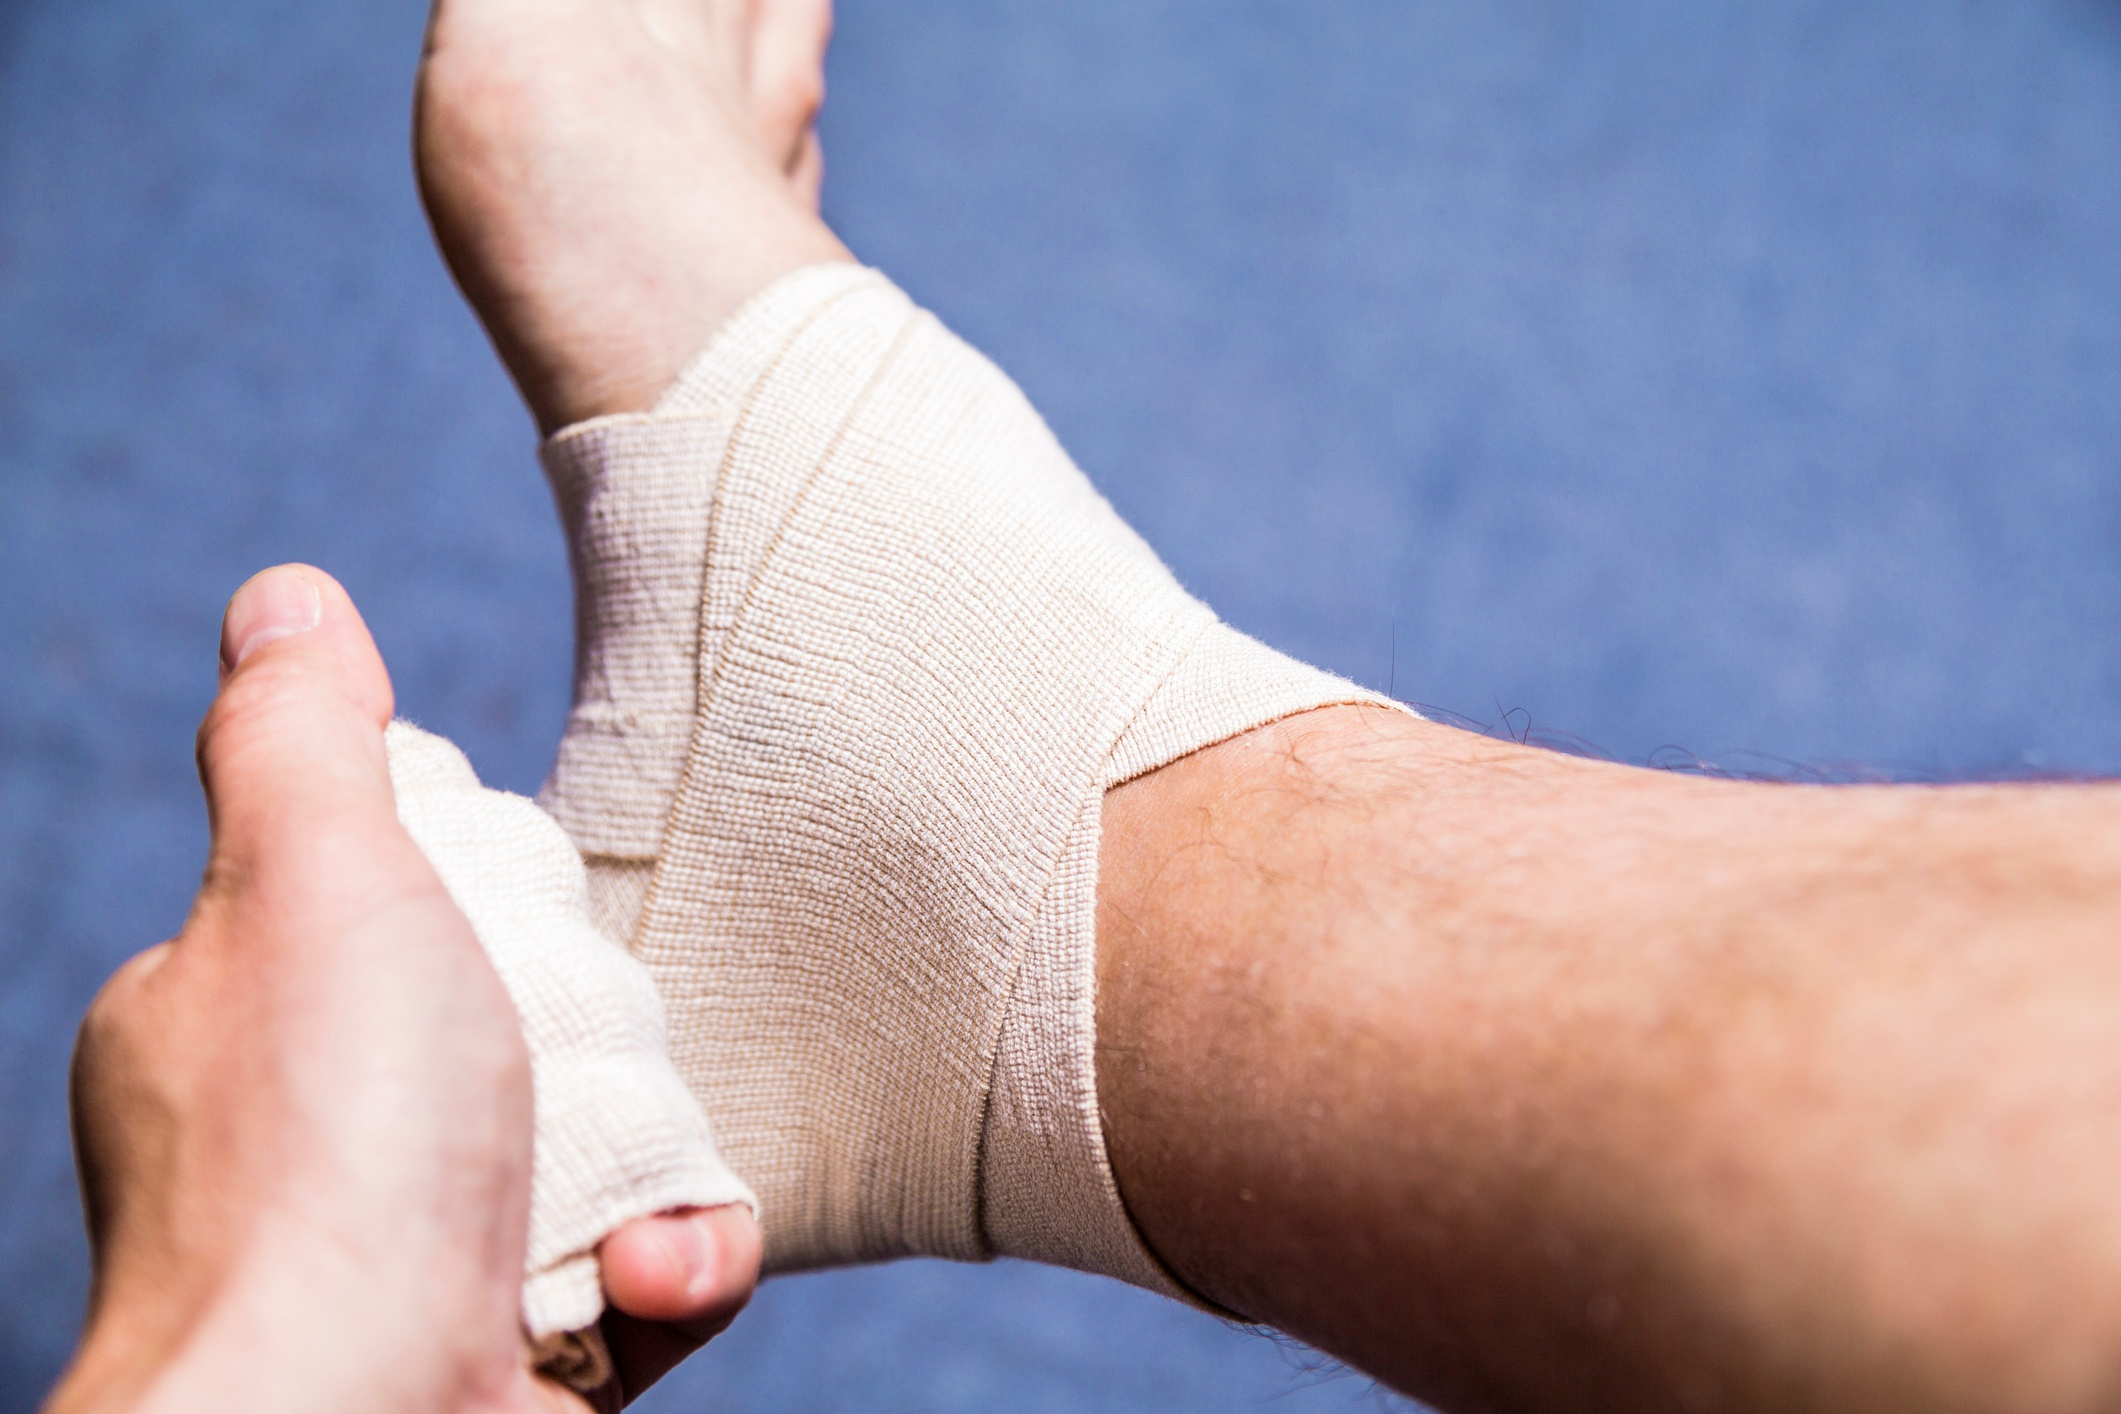 ankle sports injury bandage compress